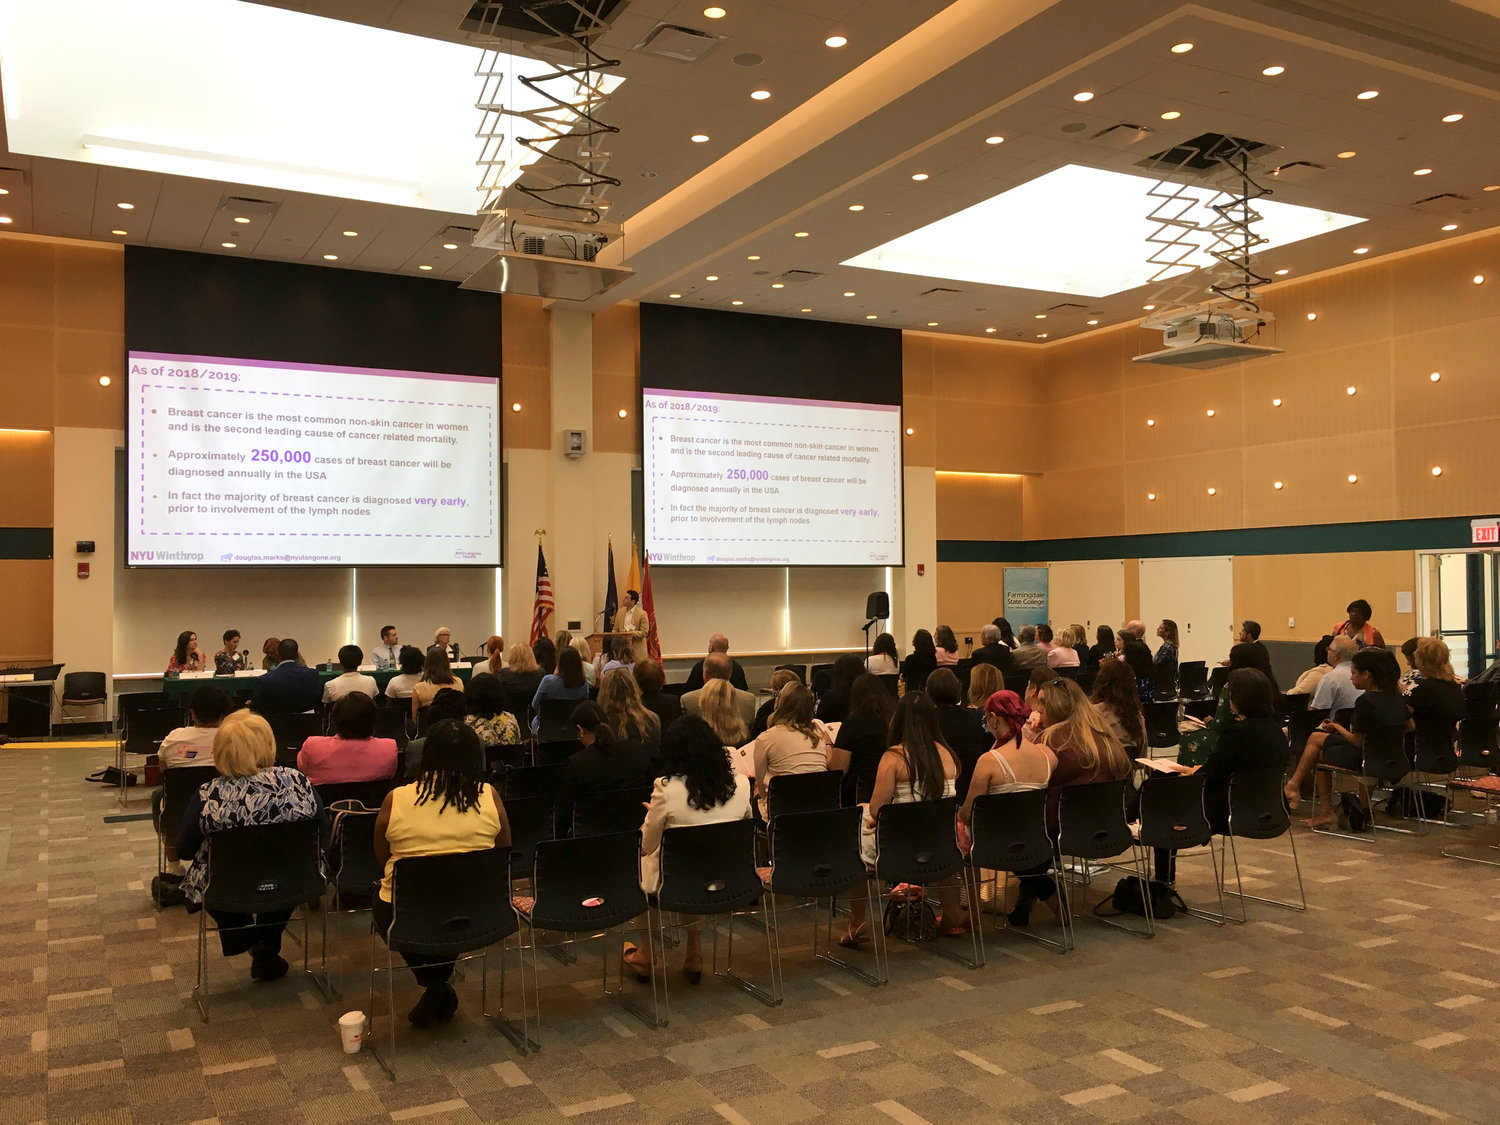 The 2019 Long Island Breast Cancer Forum was held in Farmingdale on July 24.